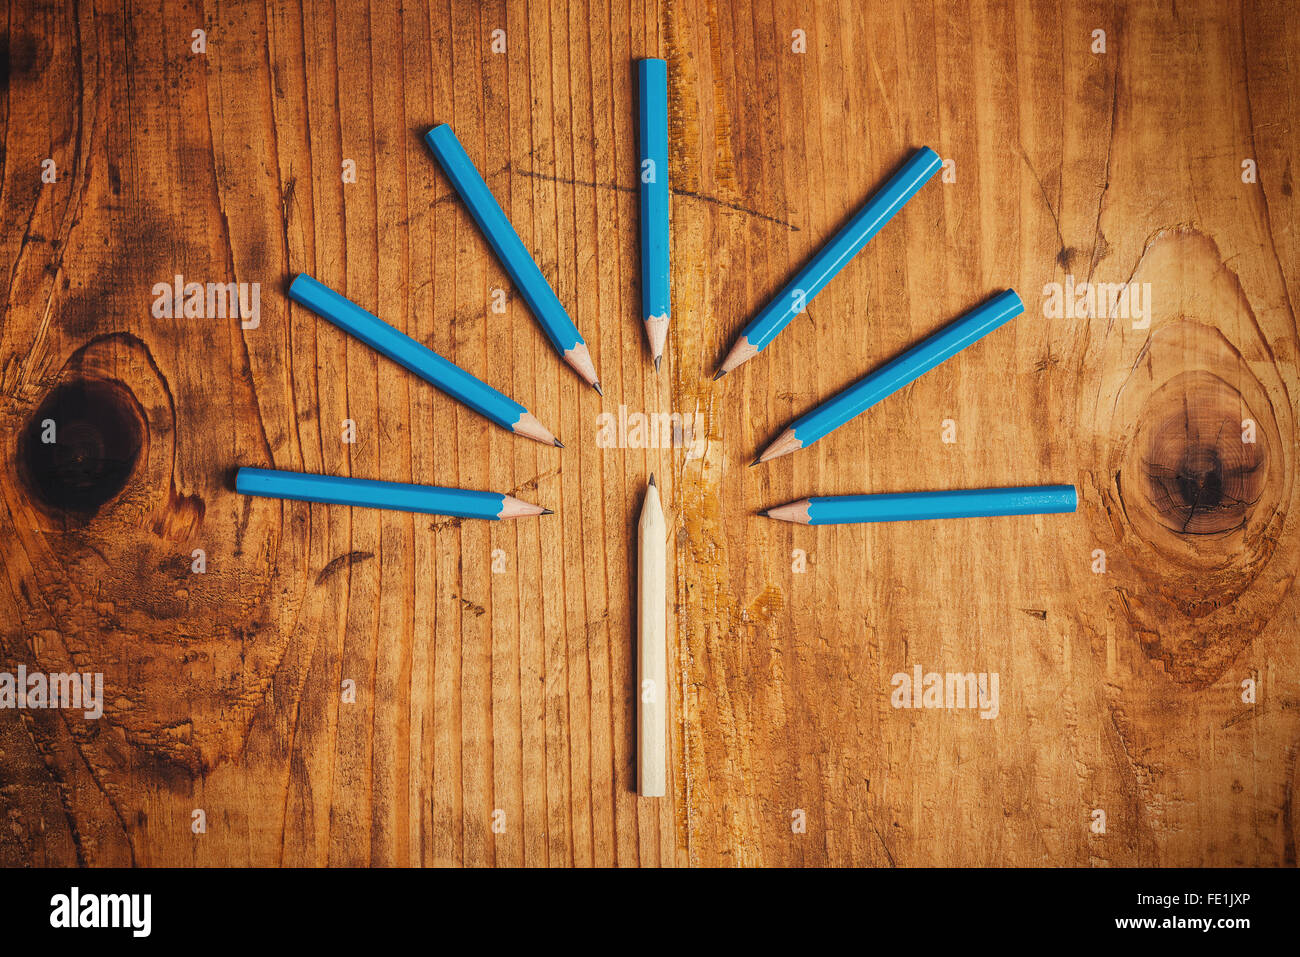 Being different concept, surrounded by adversity, judging the odd one, wood pencils on desk - Stock Image